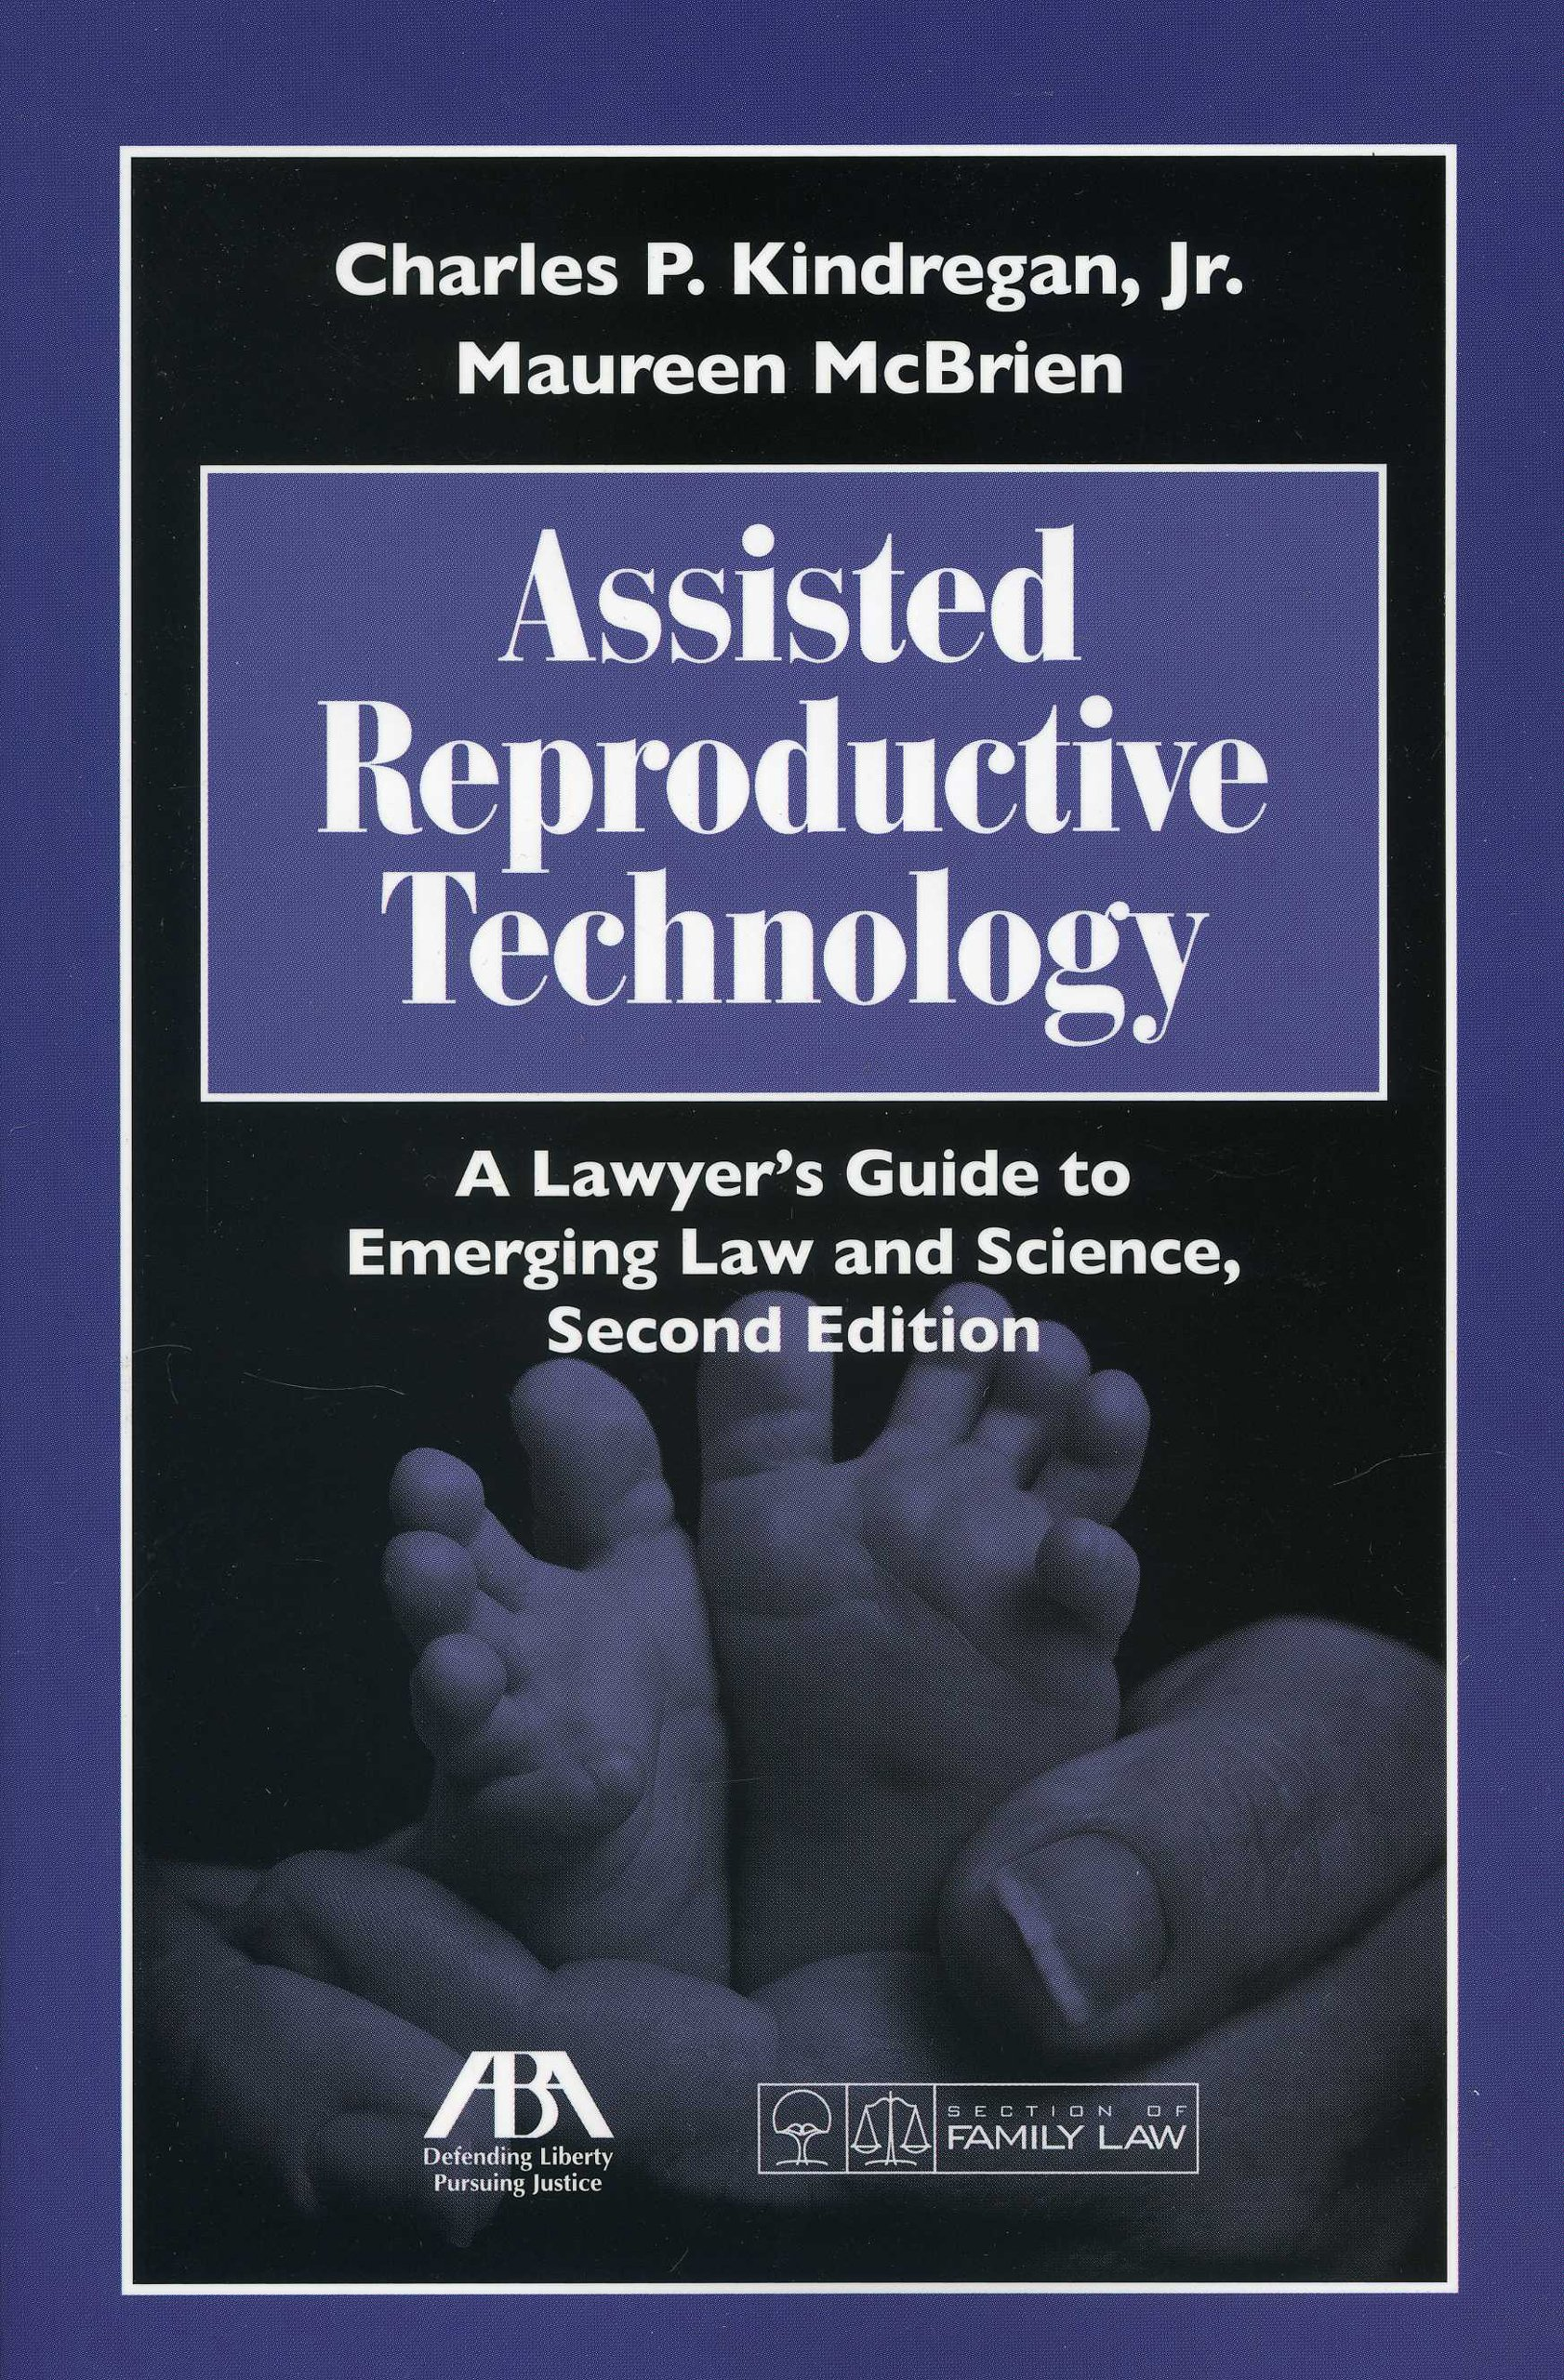 Assisted Reproductive Technology: A Lawyer's Guide to Emerging Law and Science